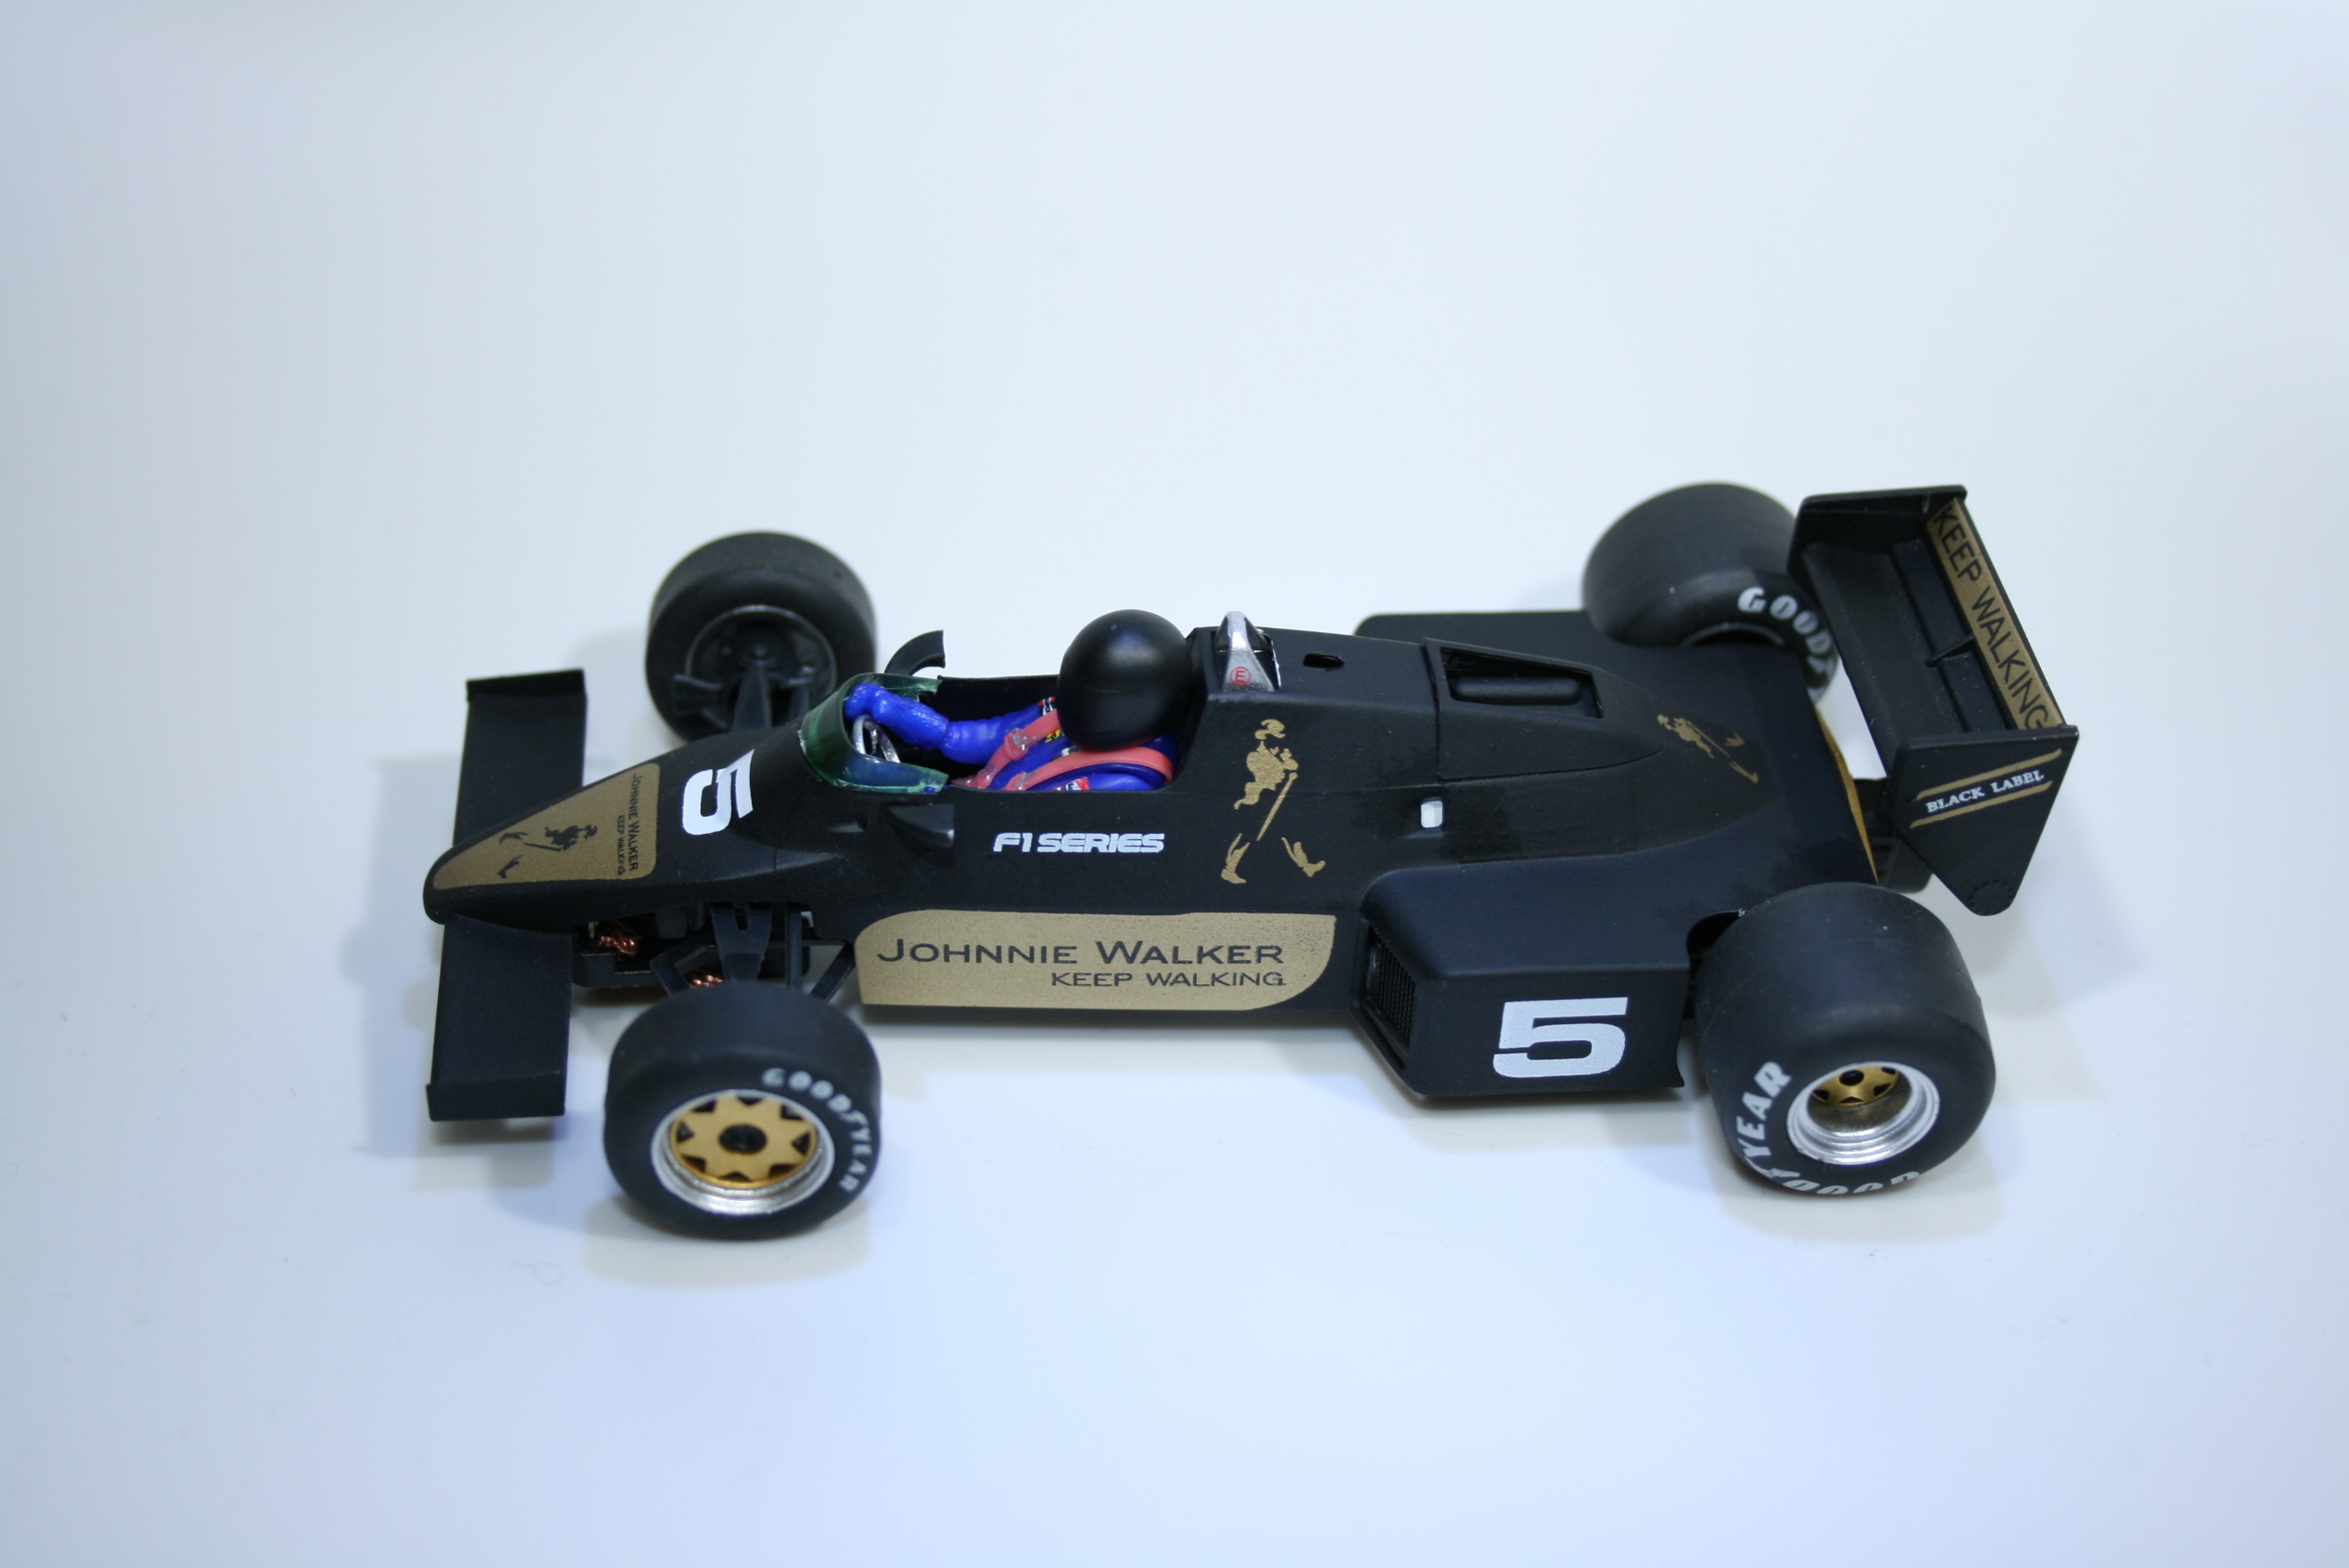 945 Williams FW08C 1983 FLY 40303 Johnny Walker Edition 2017 Boxed